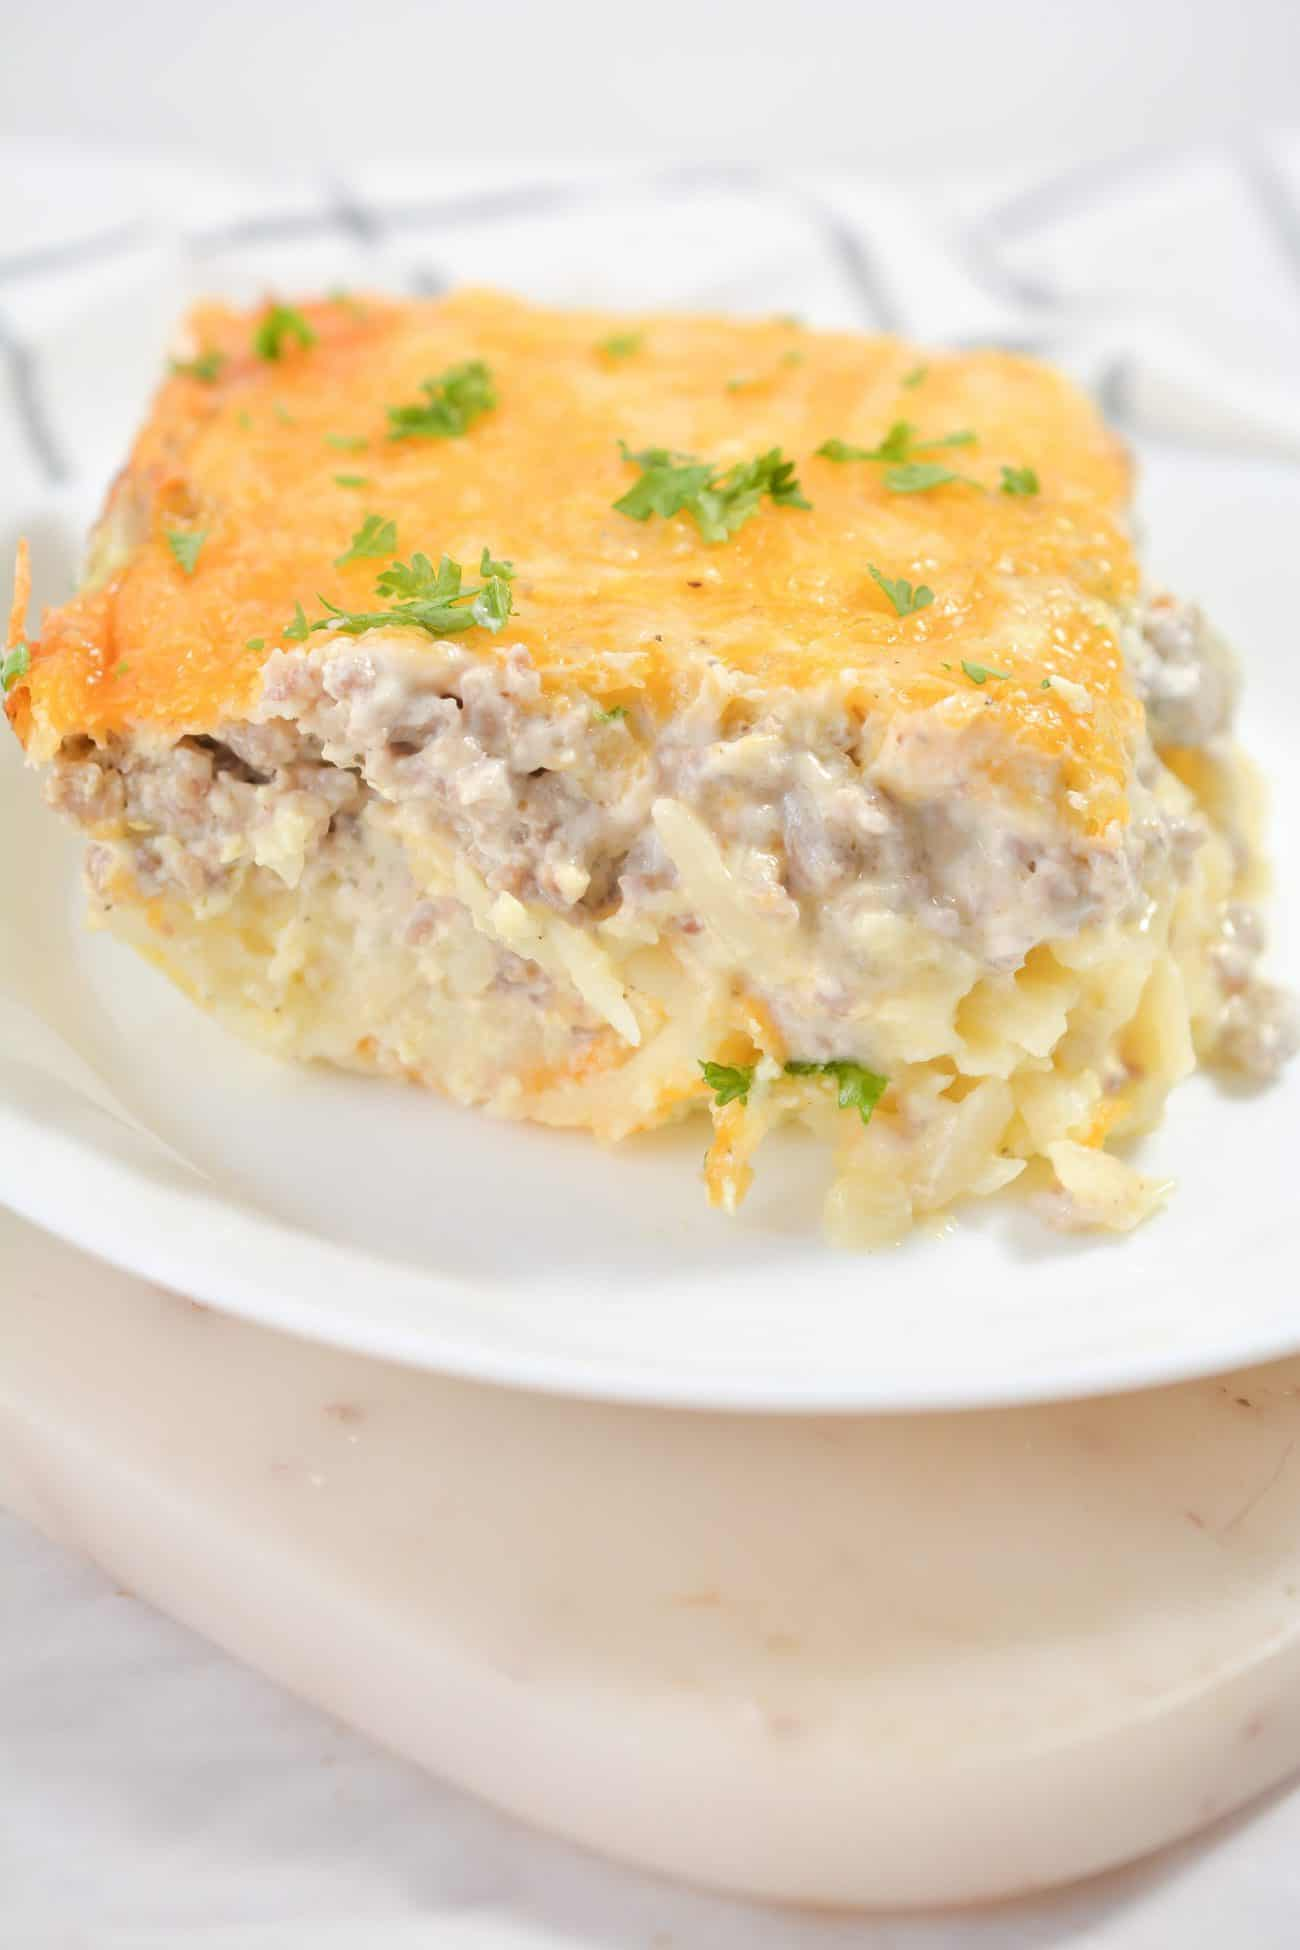 Sausage, Egg and Cream Cheese Hashbrown Casserole